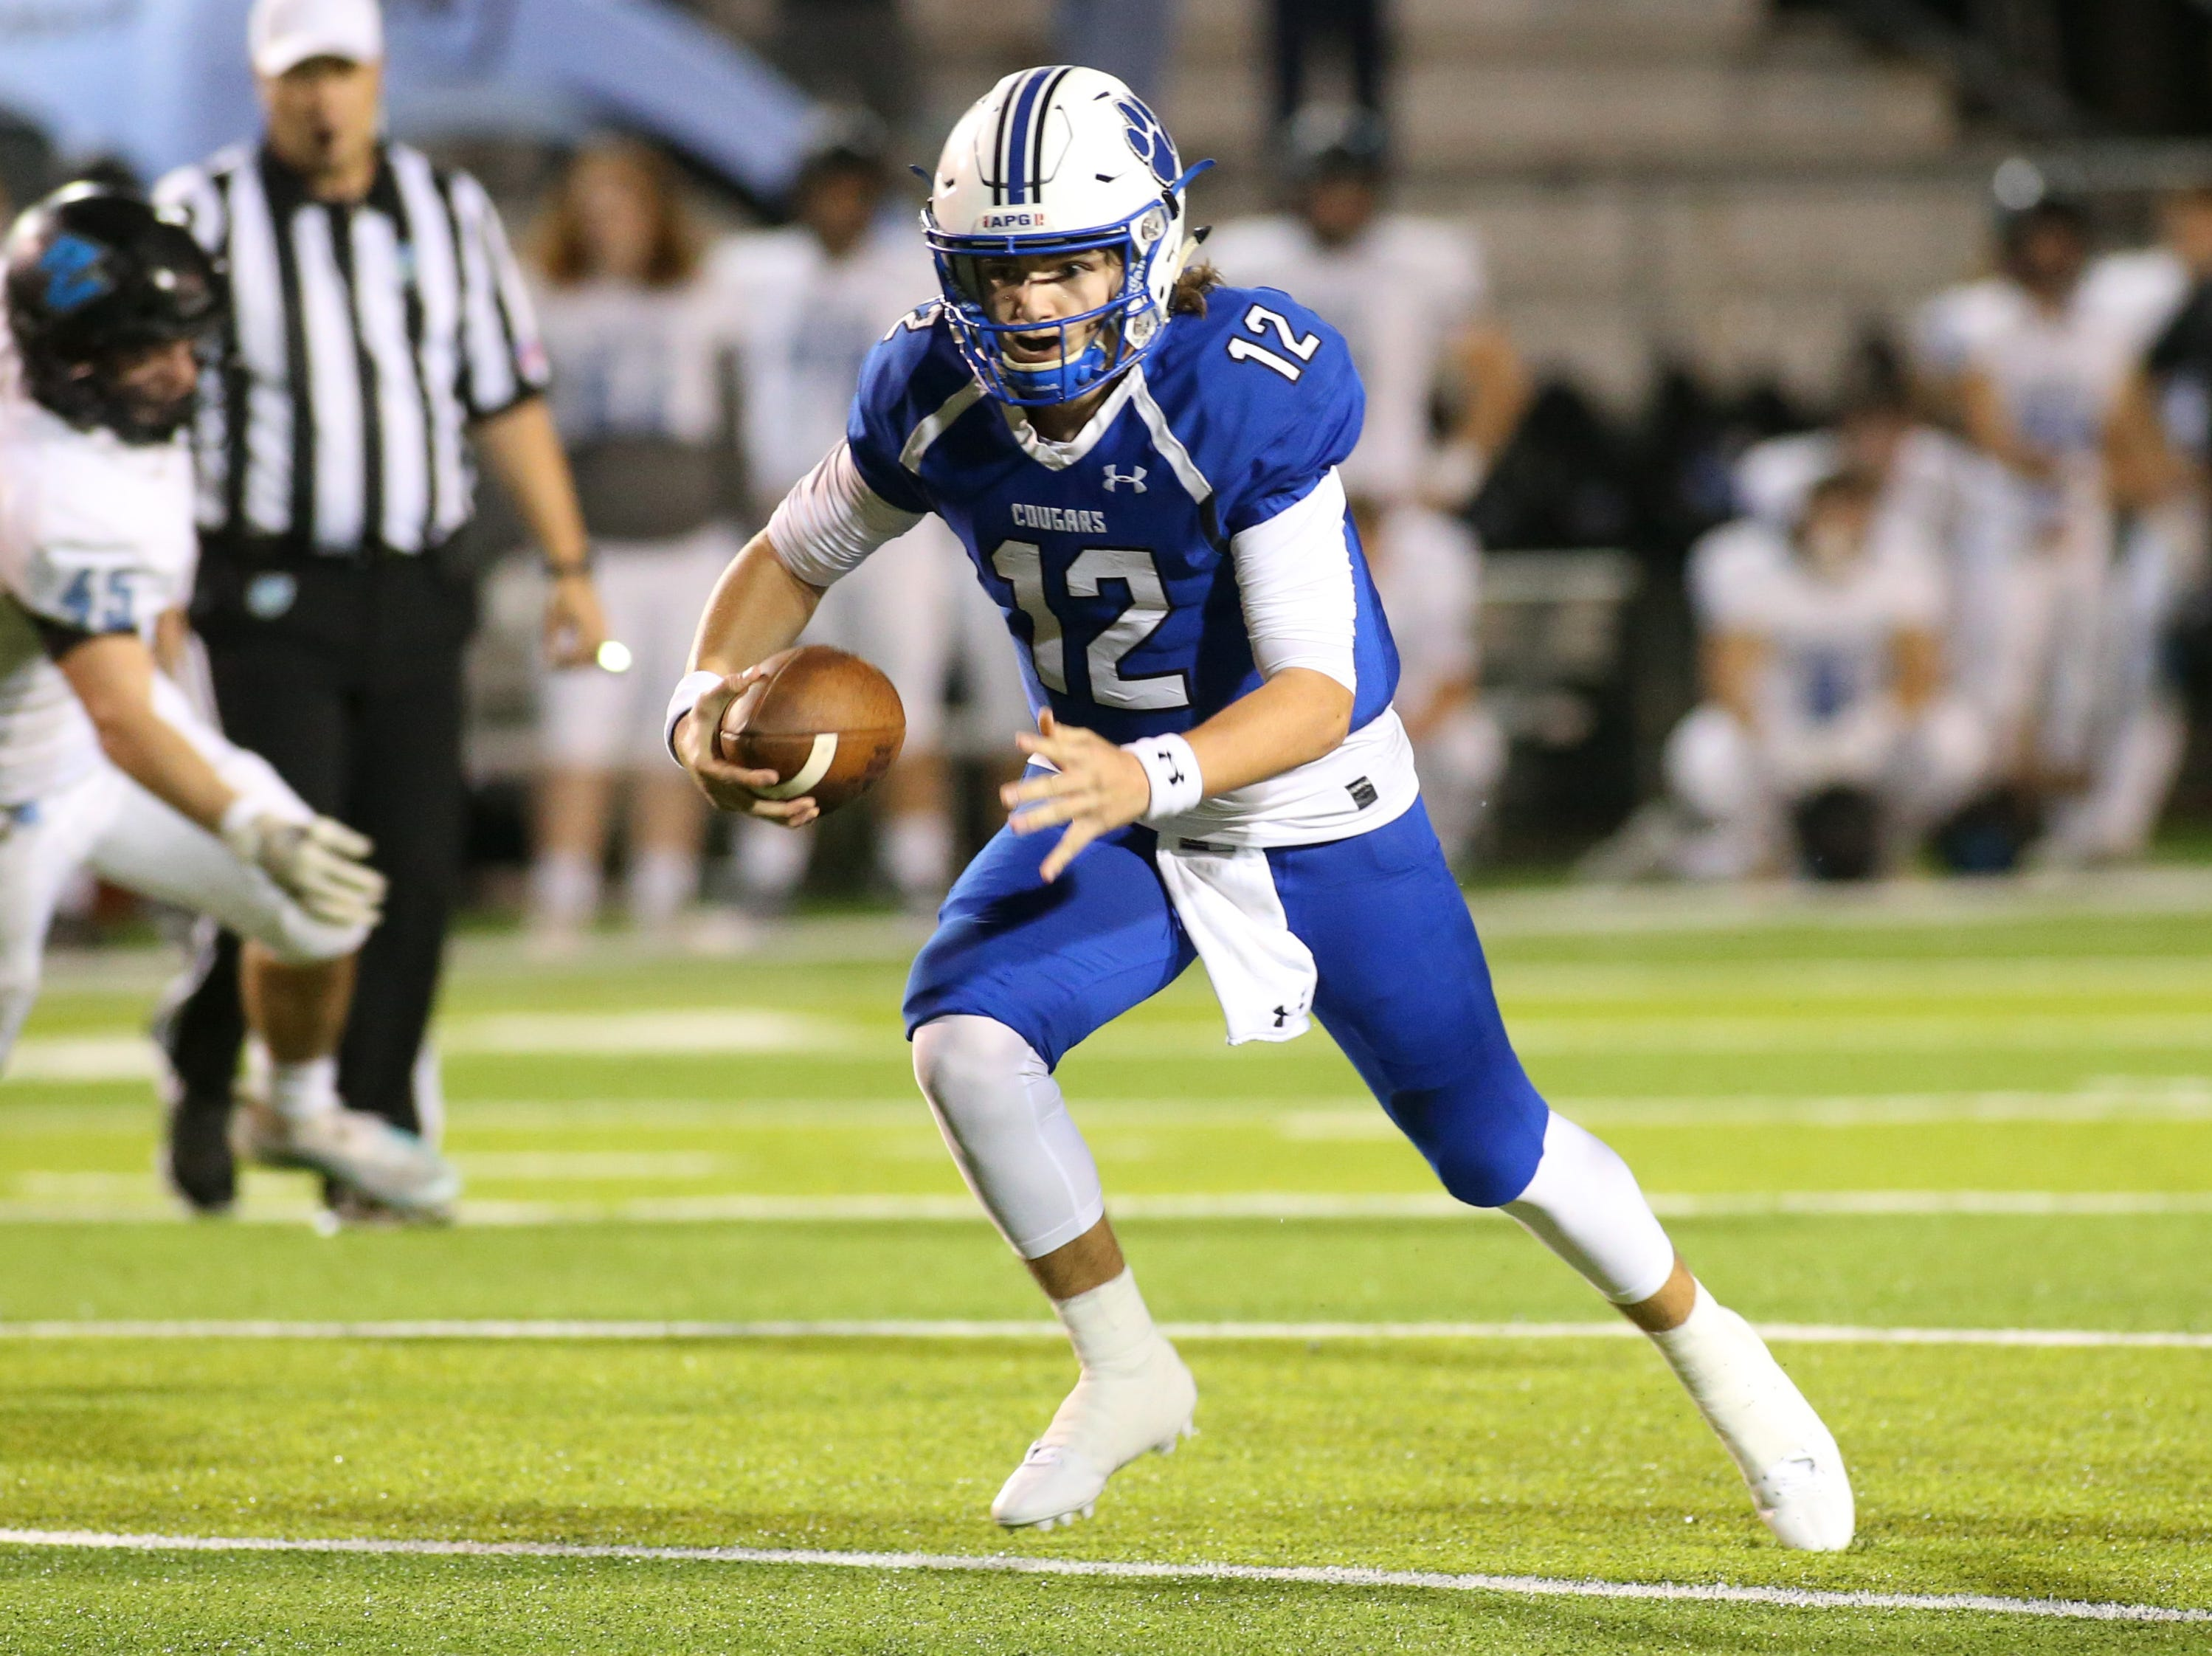 Godby quarterback, Trey Fisher (12) runs the ball as the Ponte Vedra Sharks face off against the Godby Cougars, in the Region 1-5A quarterfinal high school football playoff game at Gene Cox Stadium, Friday, Nov. 9, 2018.